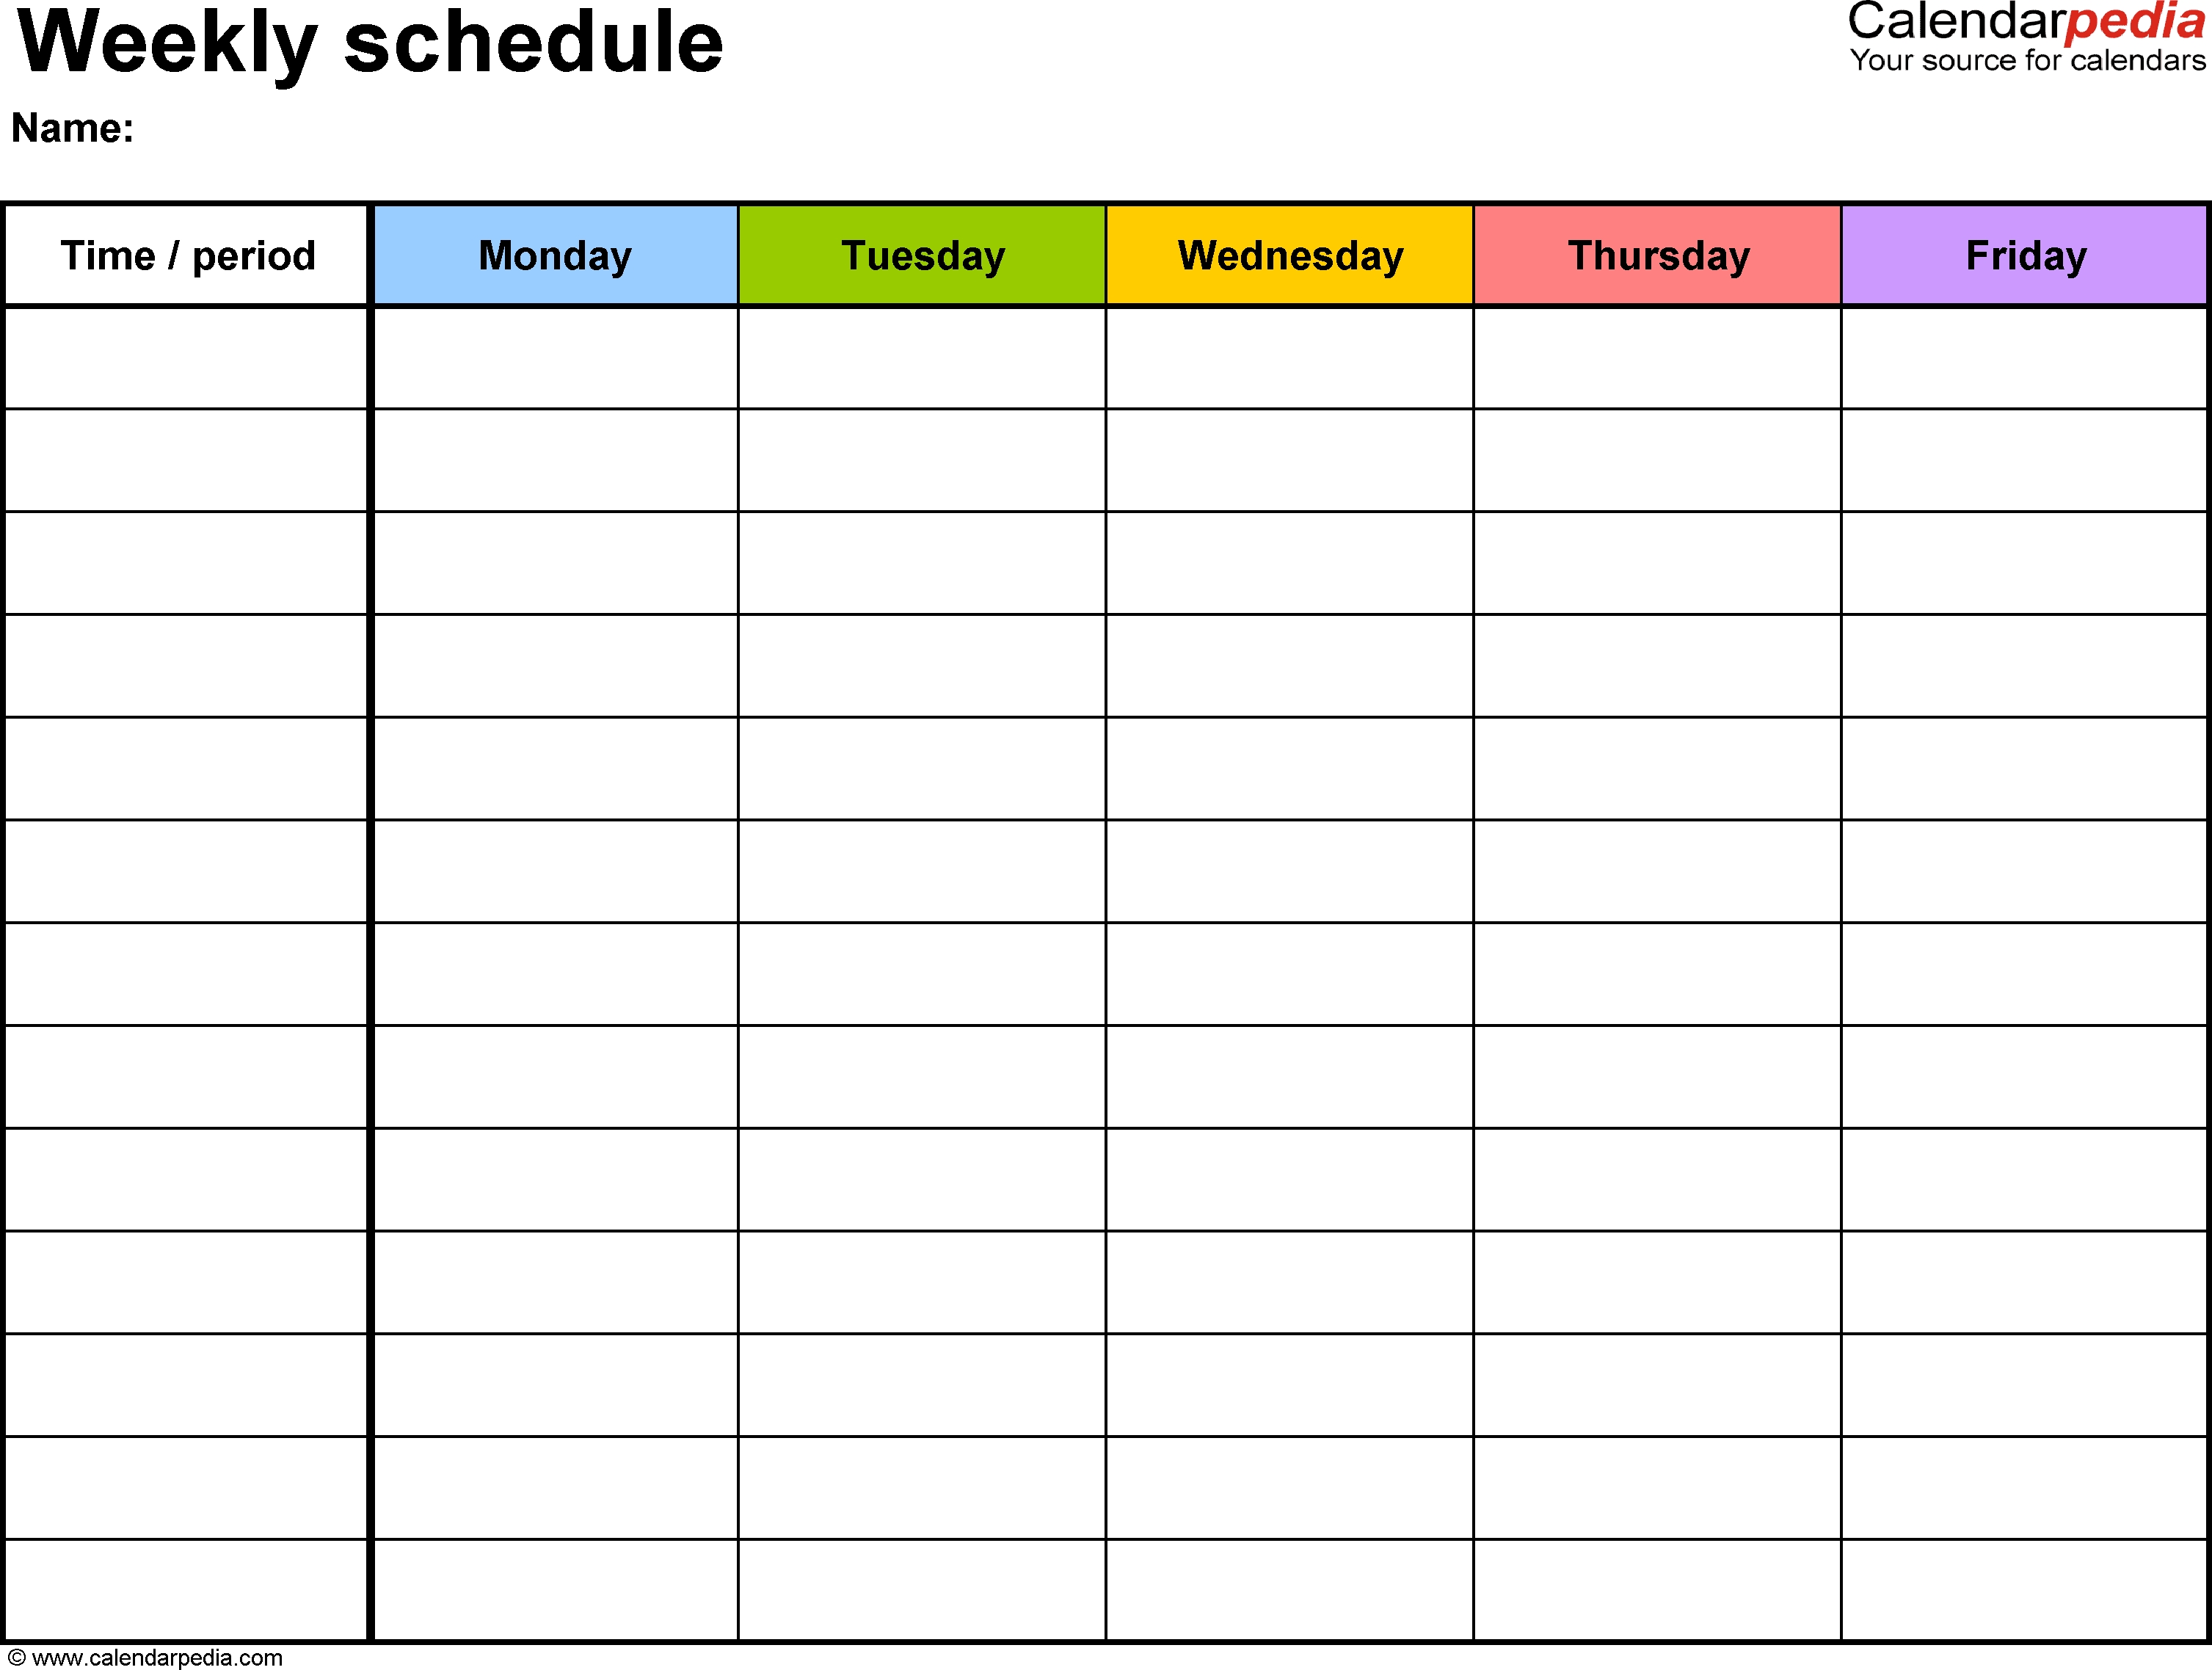 Free Weekly Schedule Templates For Pdf - 18 Templates for Graphic Organizer For Schedule From Monday To Sunday 5 Am To 9 Pm